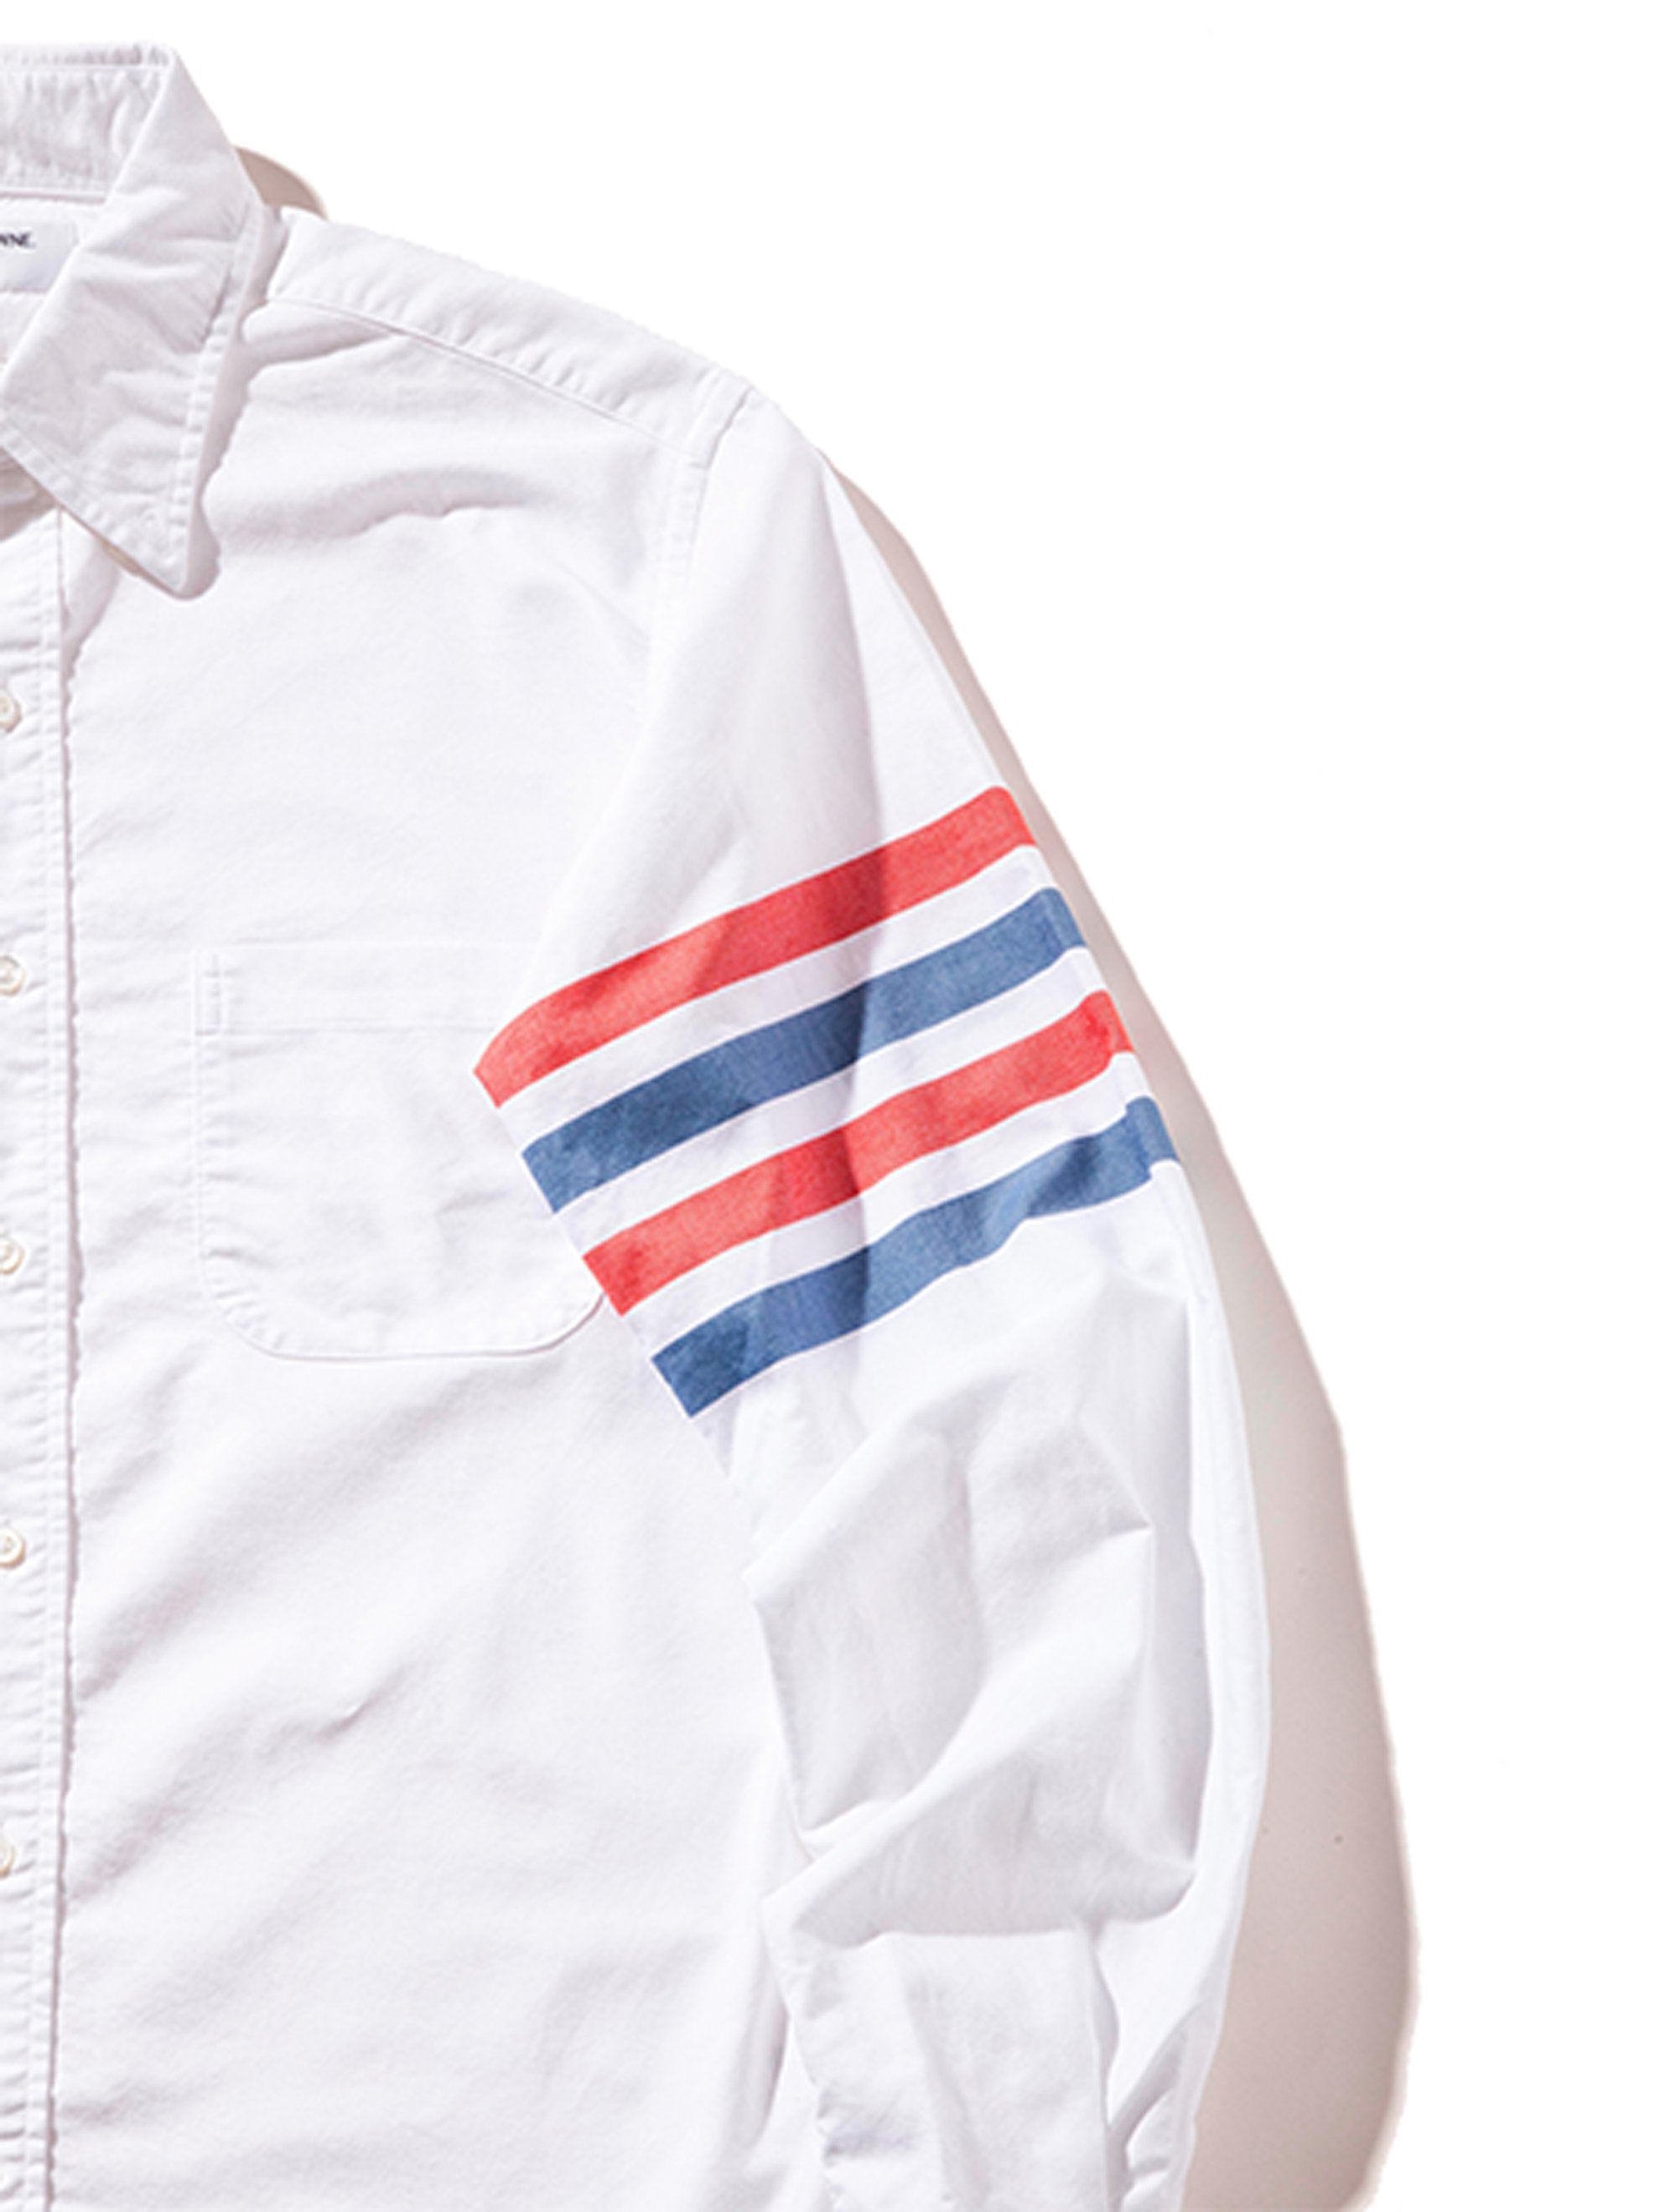 RWB White Classic LS BD Point Collar Shirt (Woven 4 Bar) 7